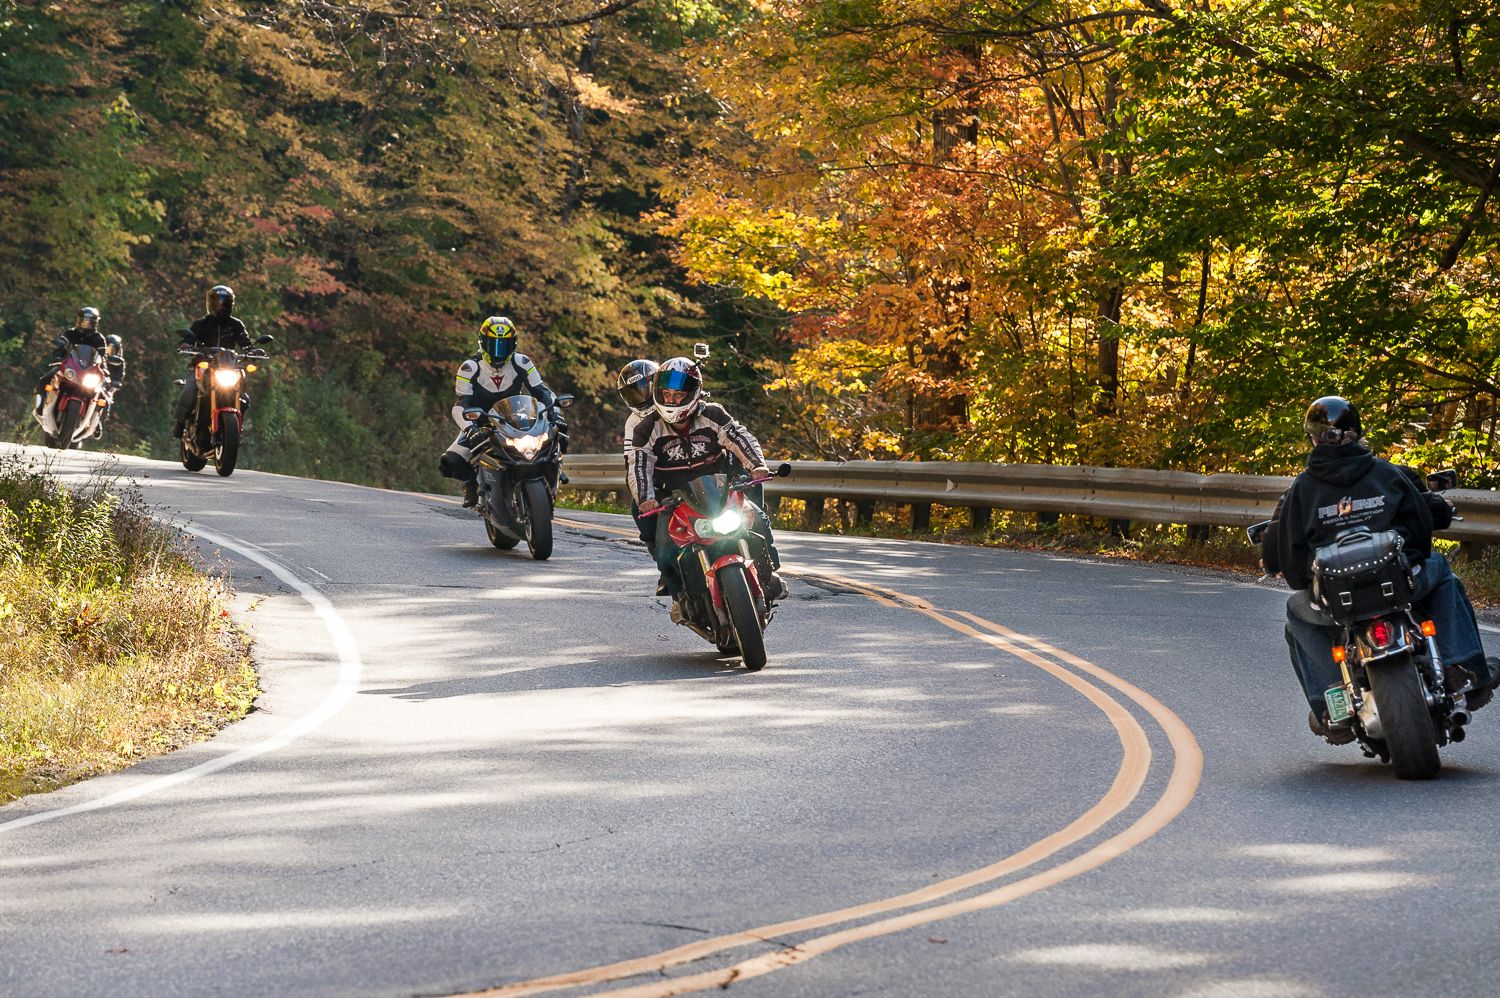 Motorcyclists ride through App Gap on a fall day VT 17 in Vermont. Photo by Bob LoCicero